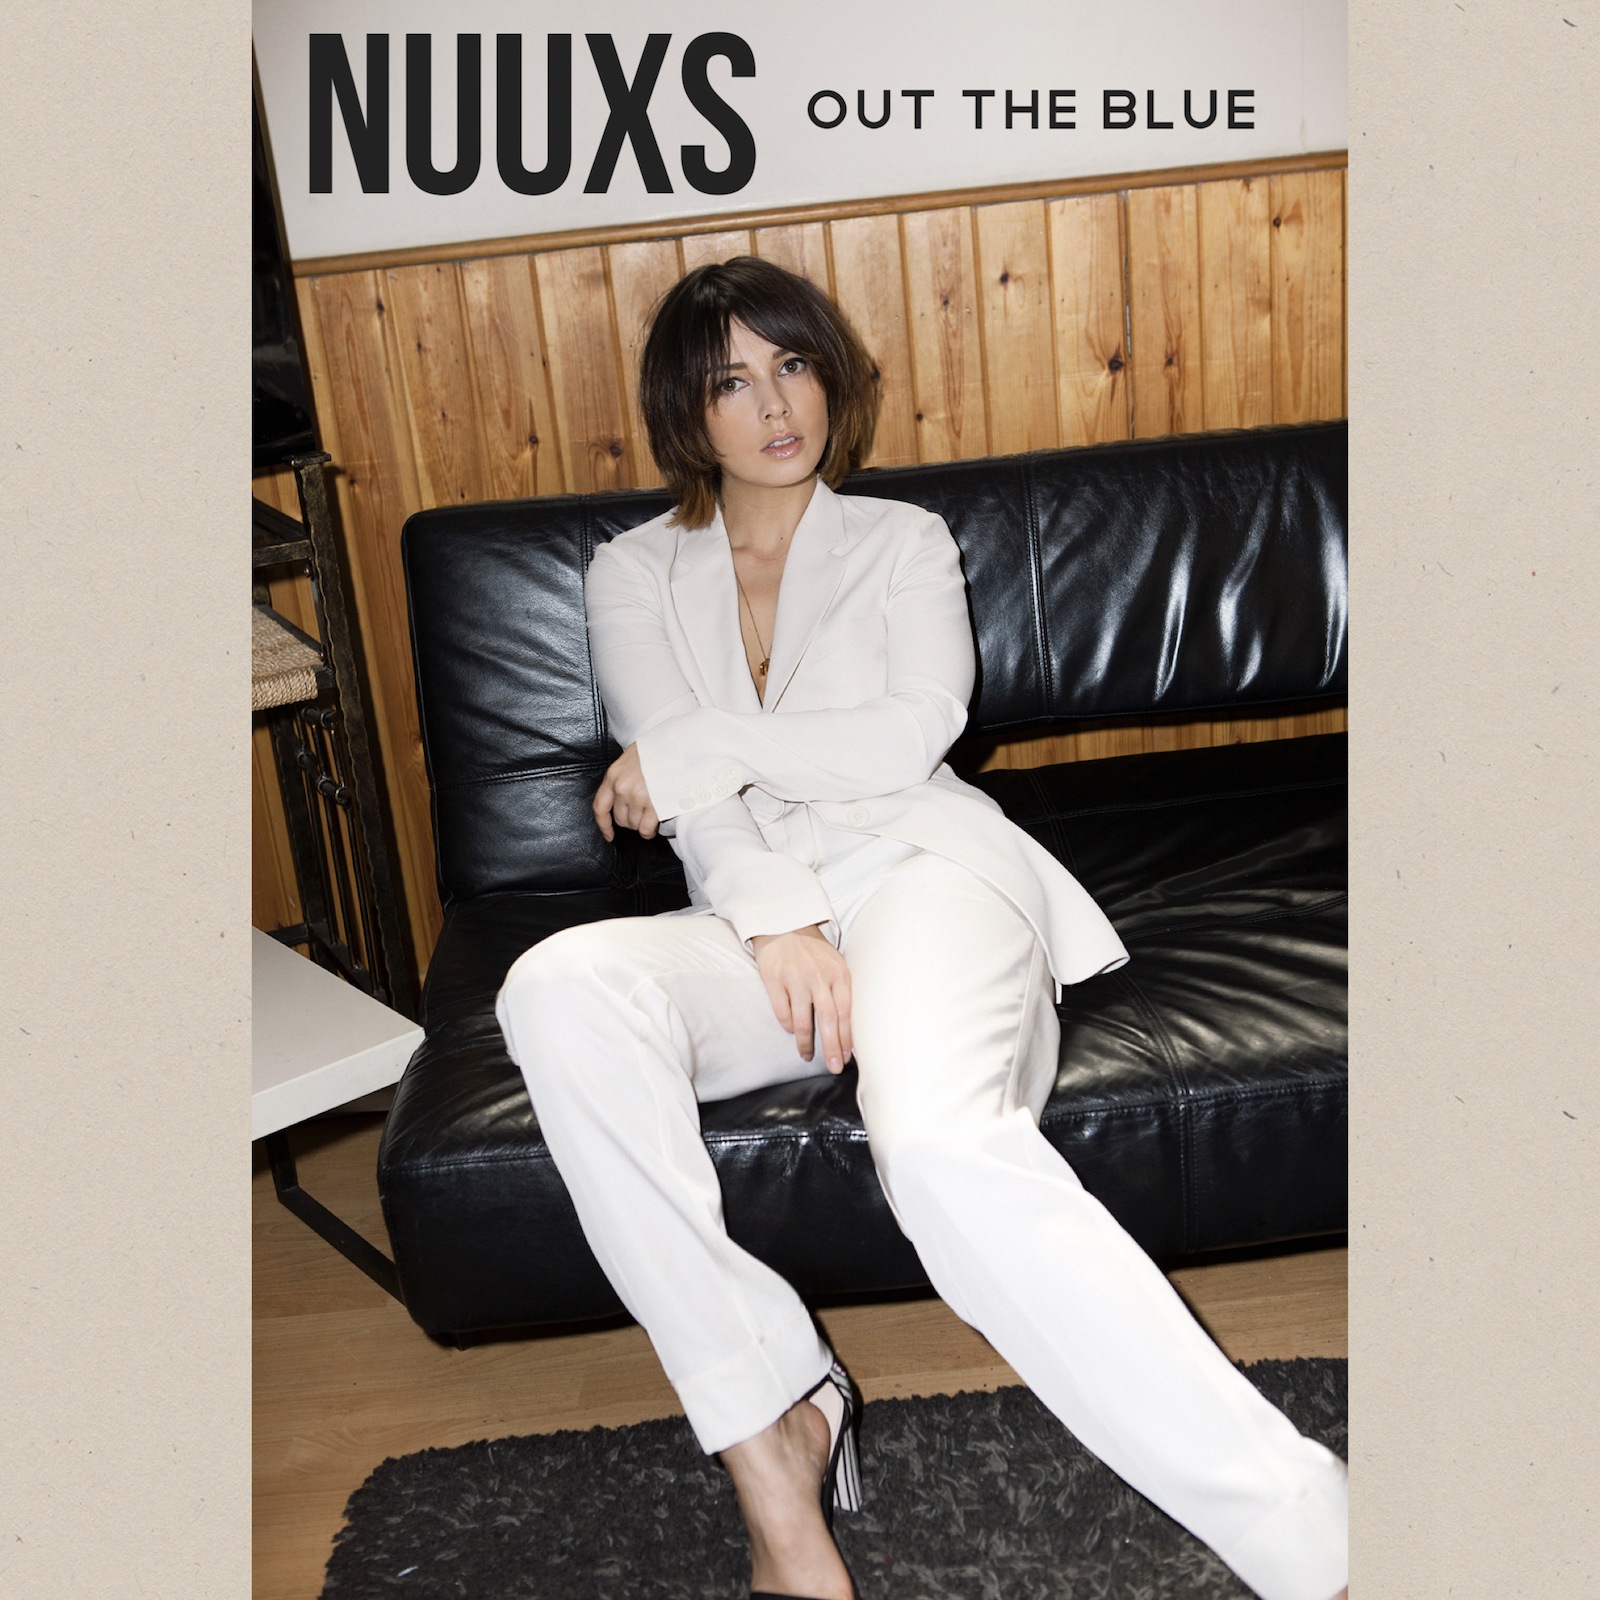 Nuuxs out the blue single artwork